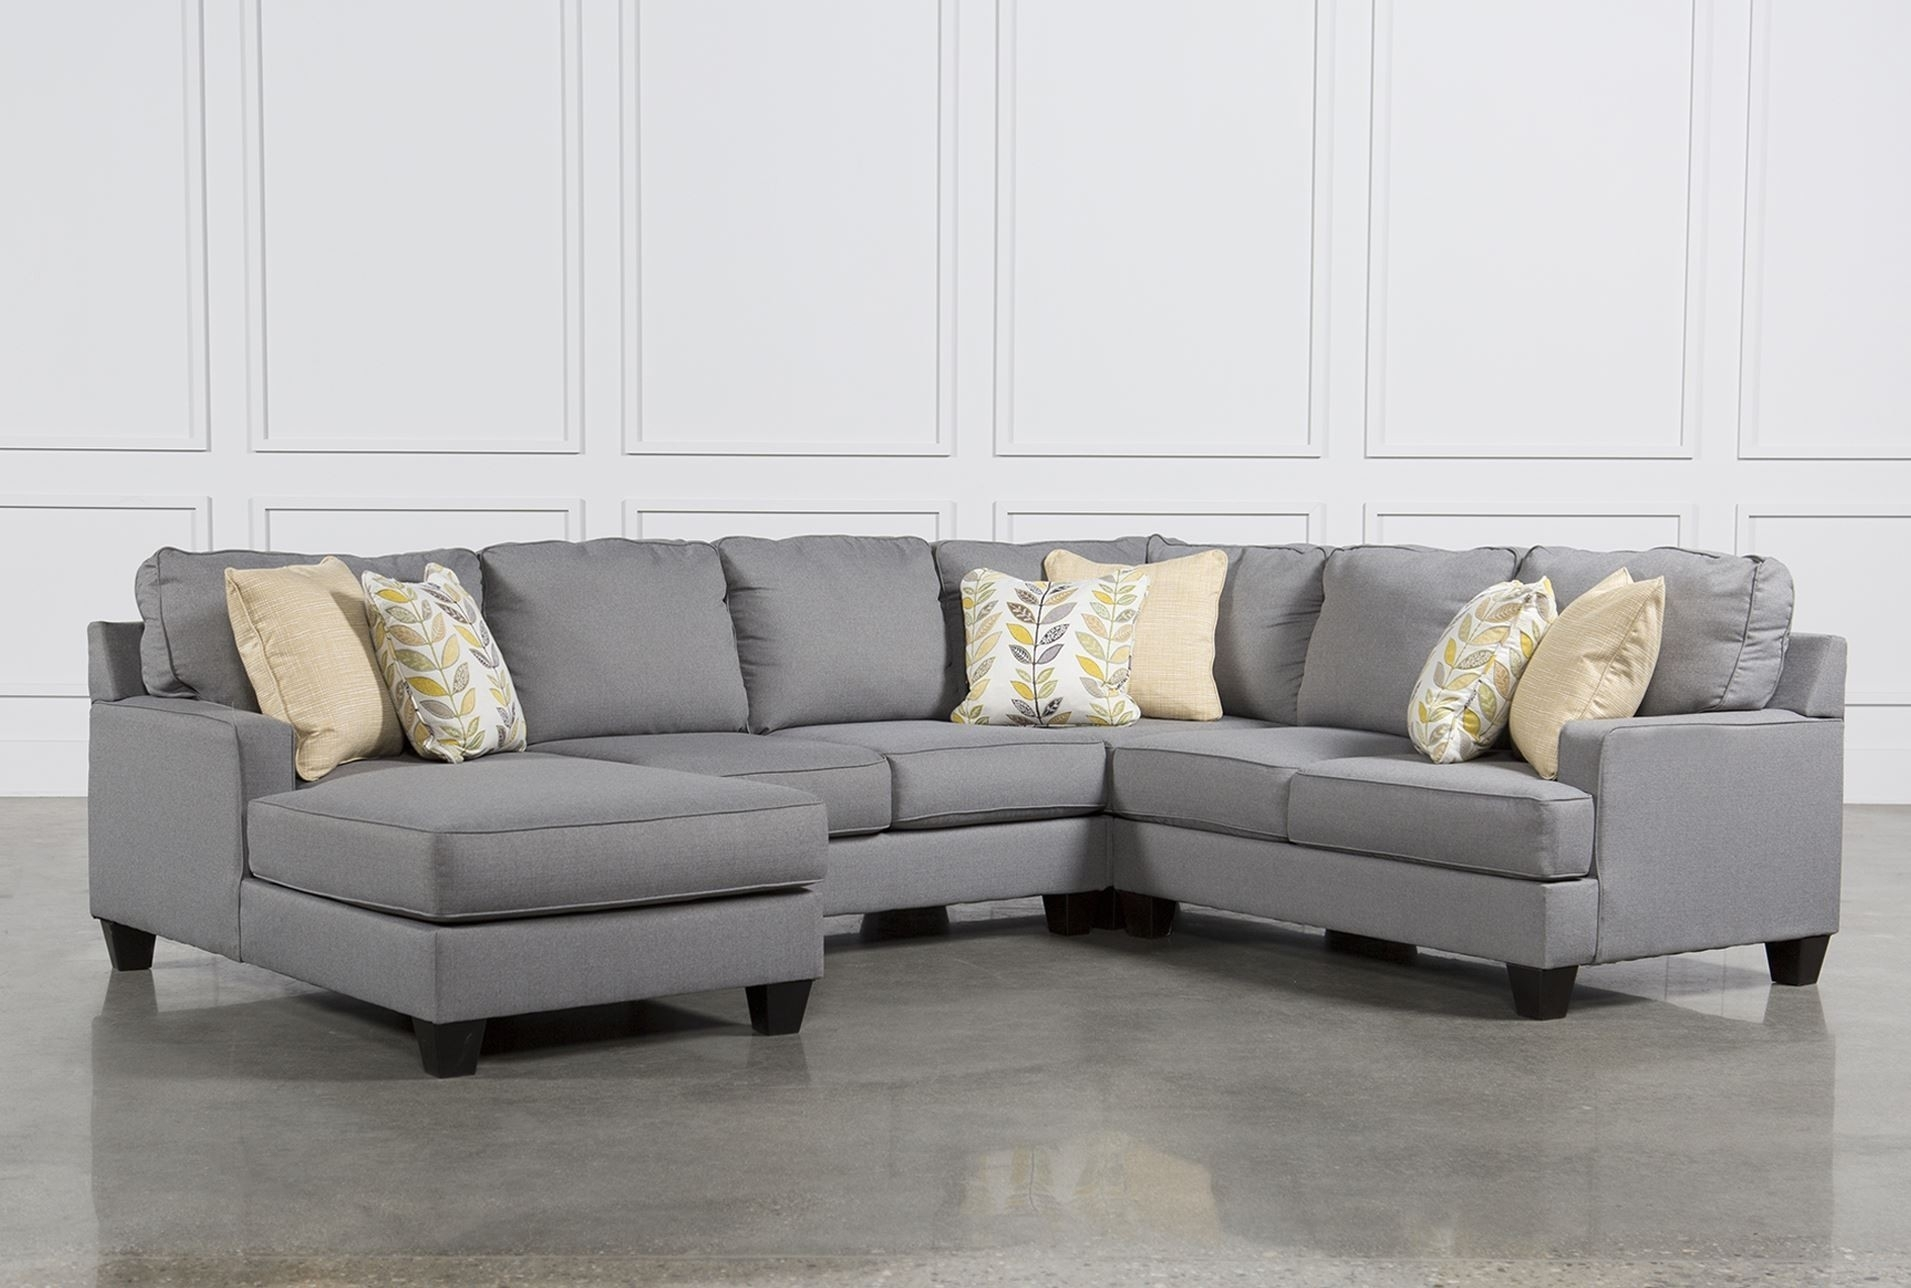 Living Spaces Sectional Sofas – Implantologiabogota (View 13 of 25)